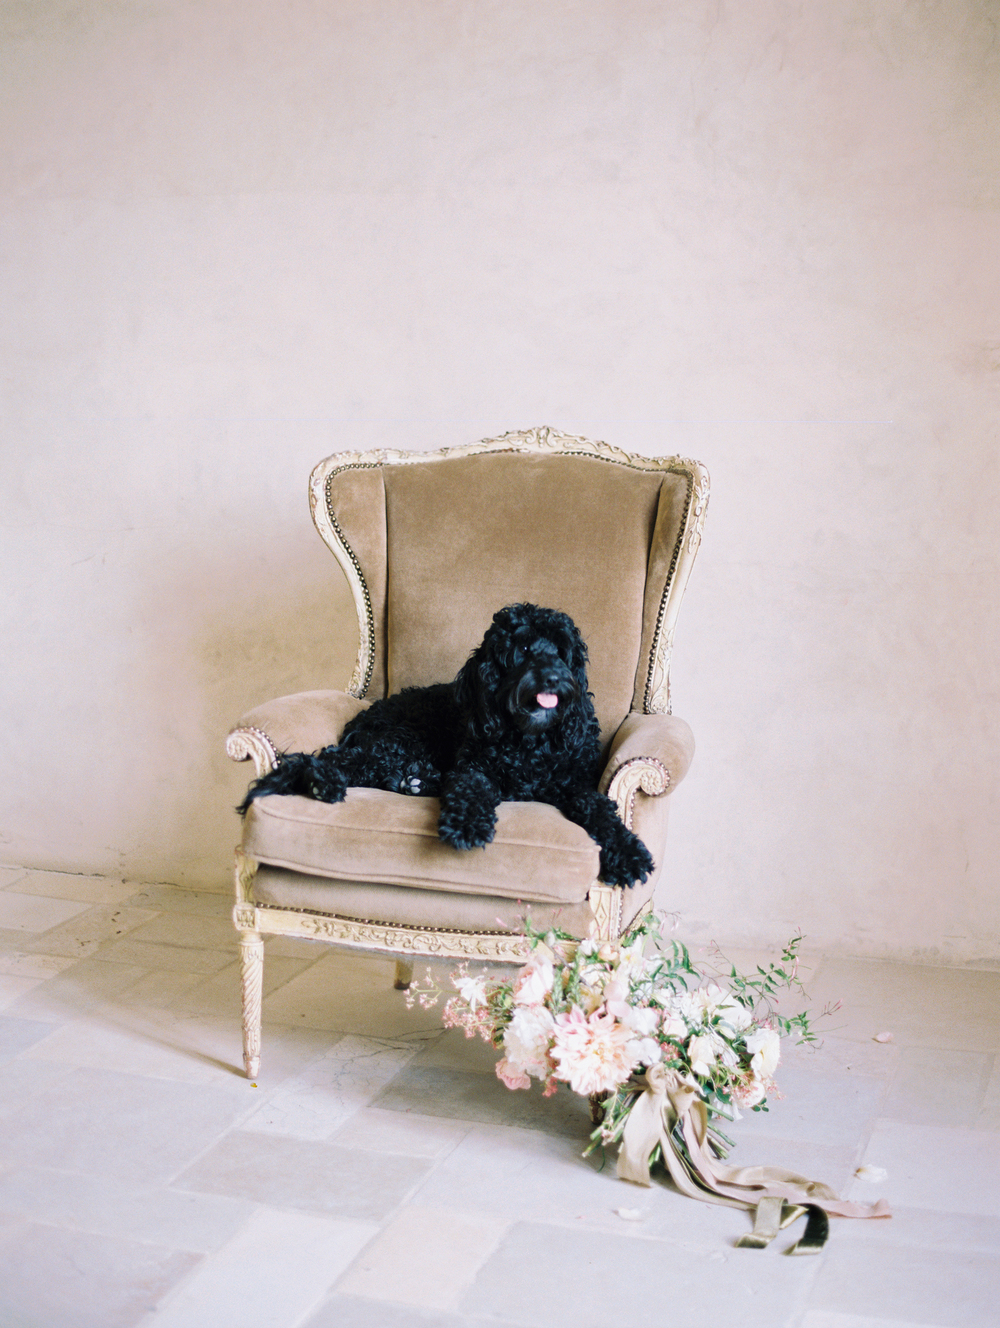 sunstone-villa-wedding-inspiration-carolly-santa-ynez-black-poodles.jpg